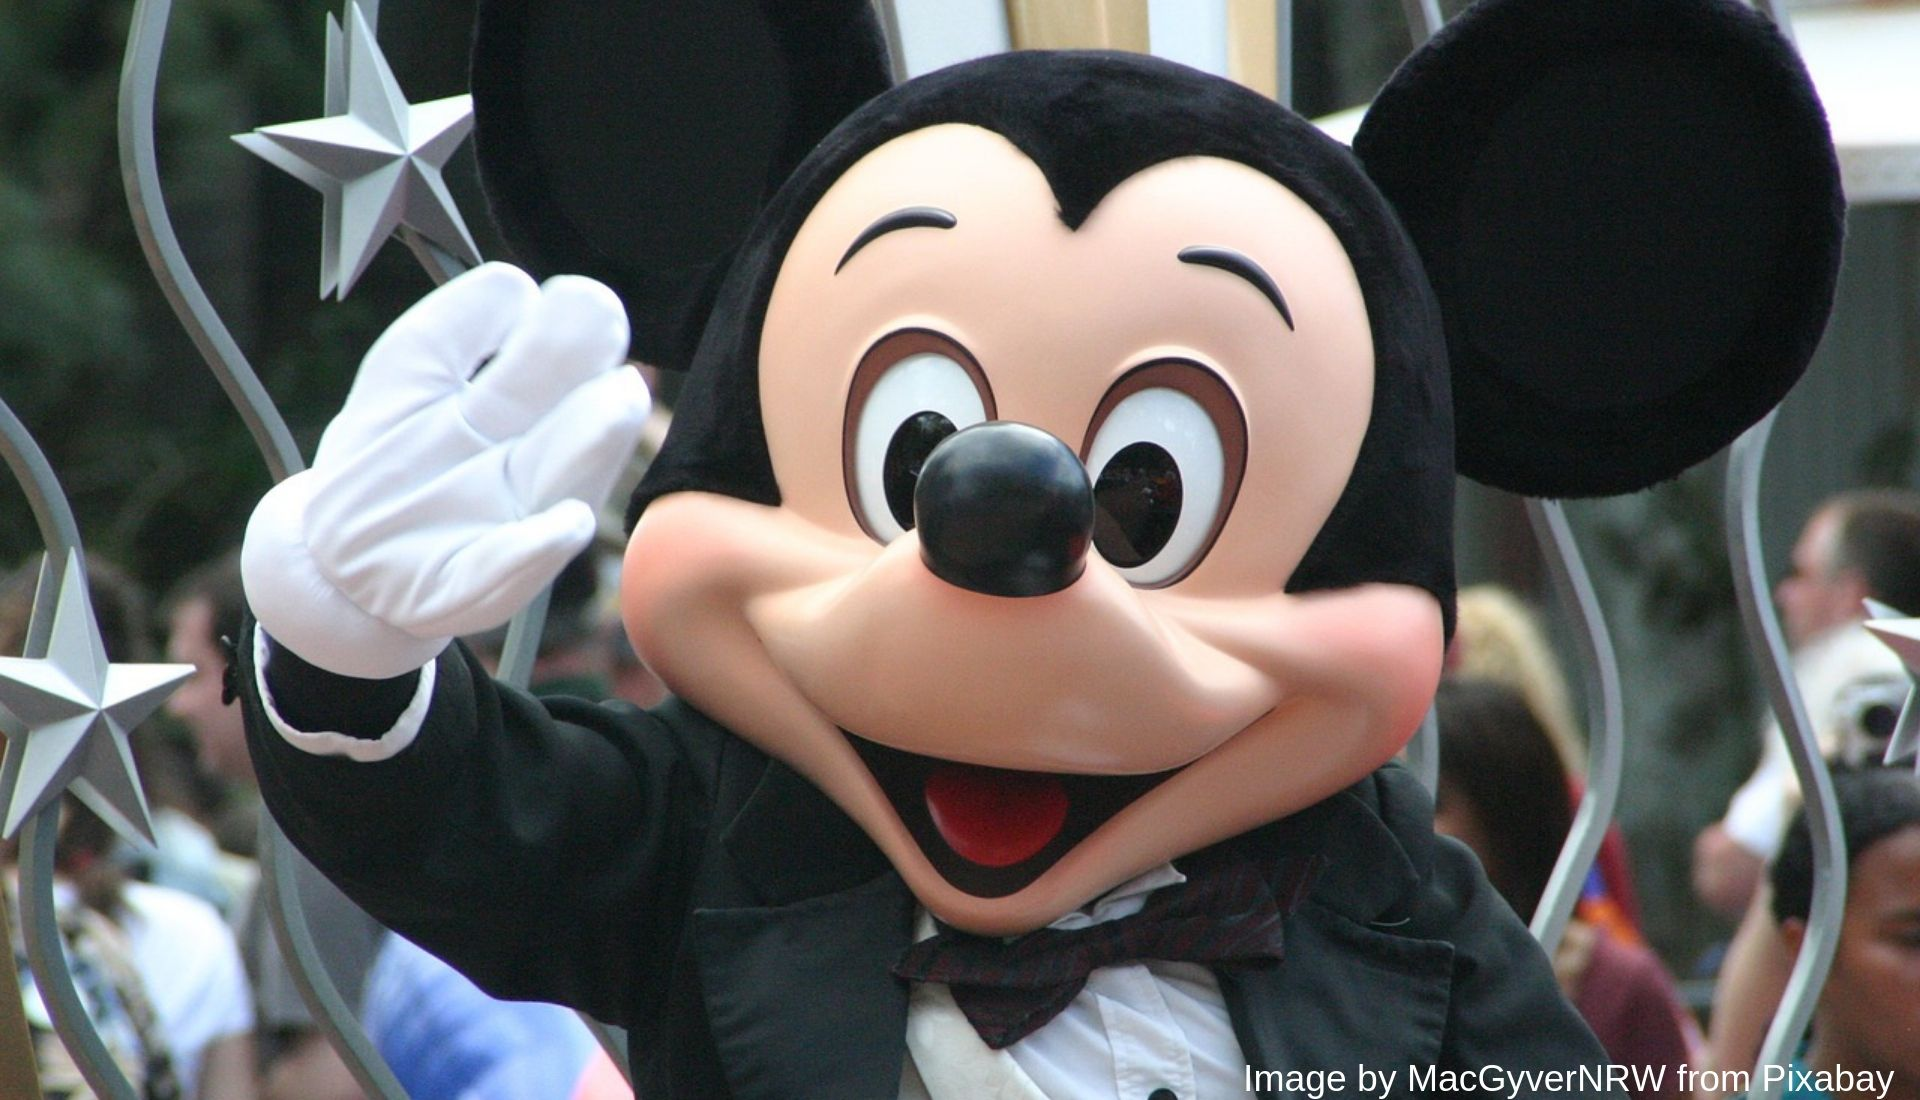 A trip to the USA Mickey Mouse